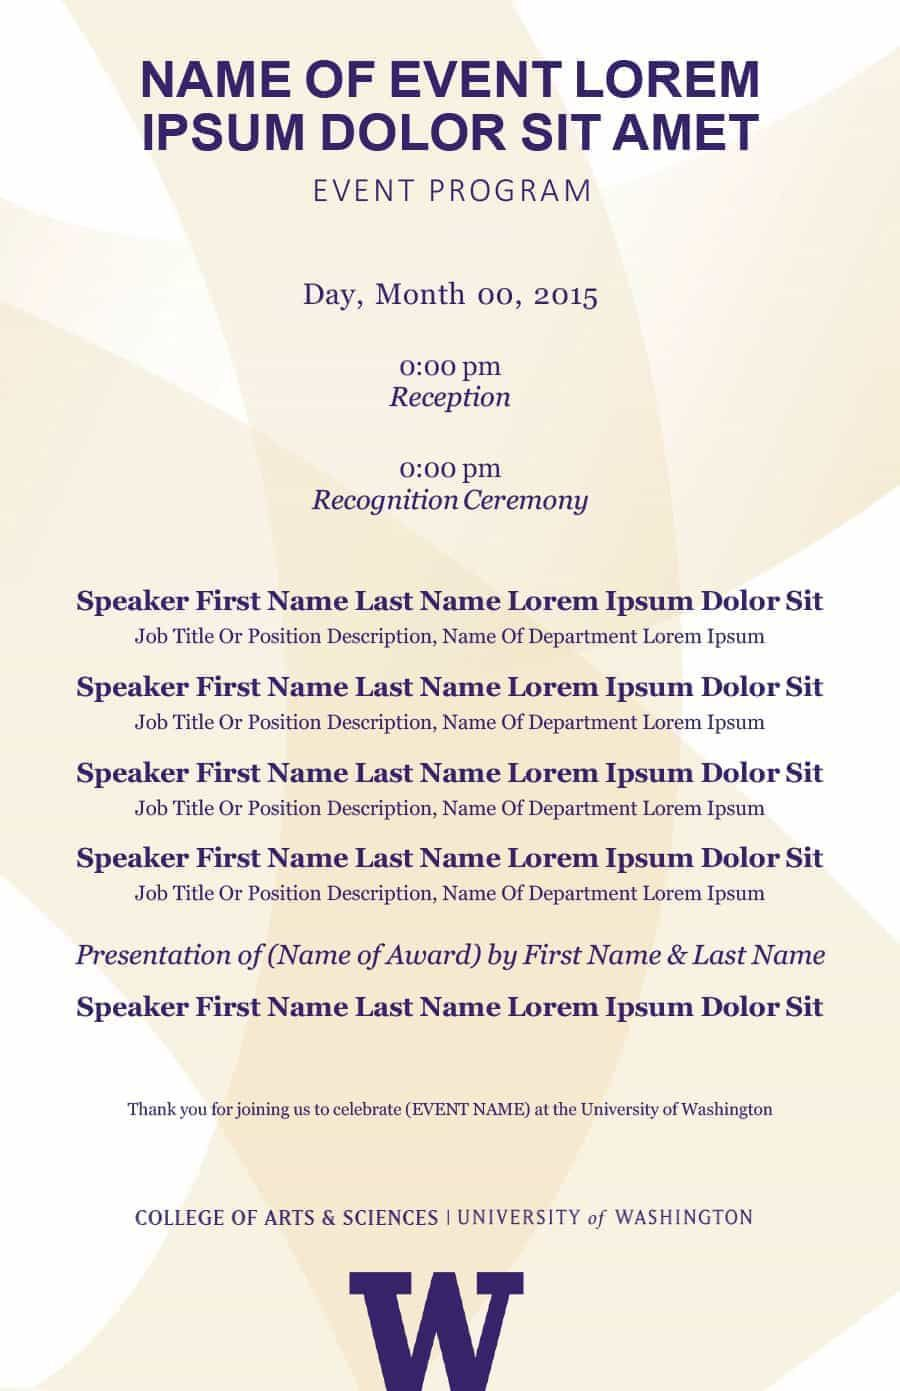 004 Rare Free Event Program Template Picture  Schedule Psd WordFull